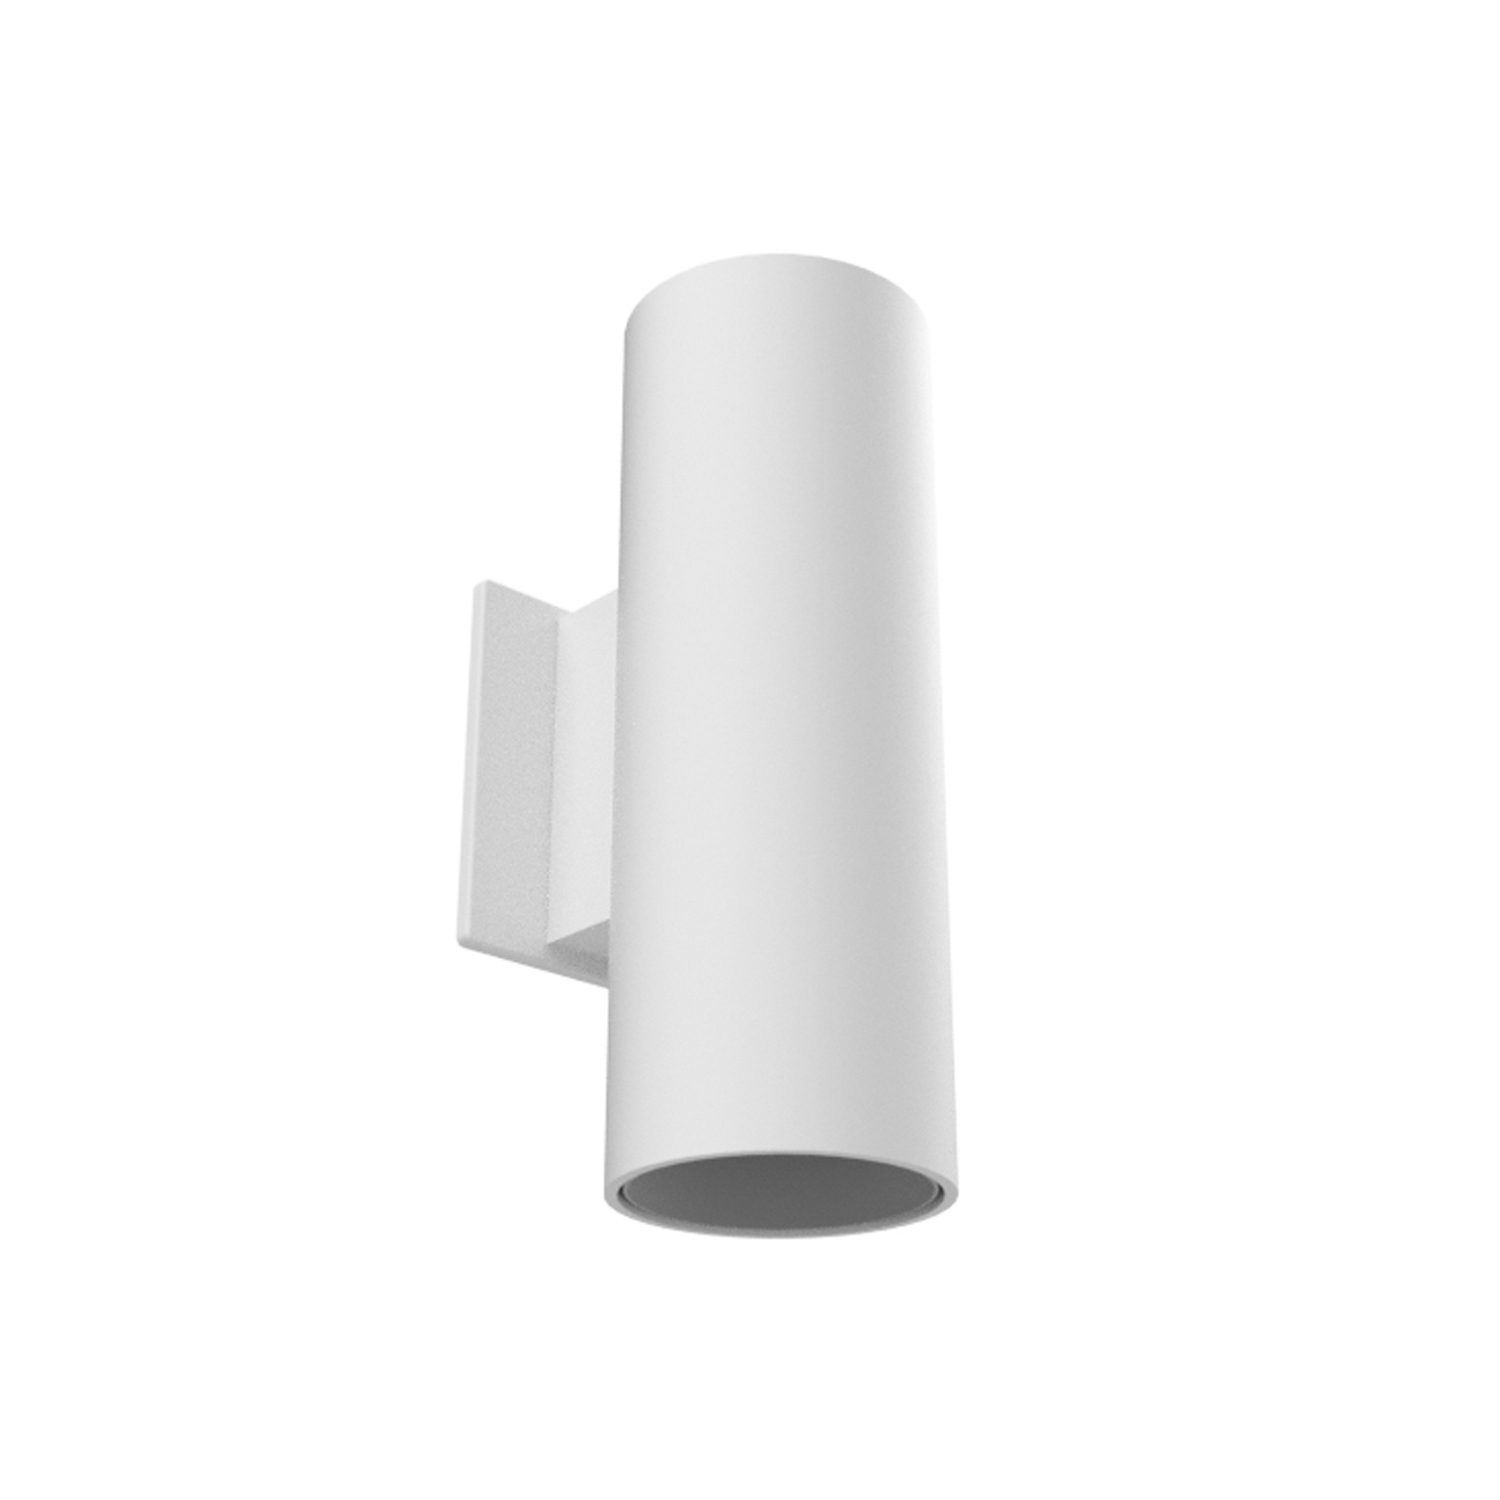 Direct – Canopy Wall Mount